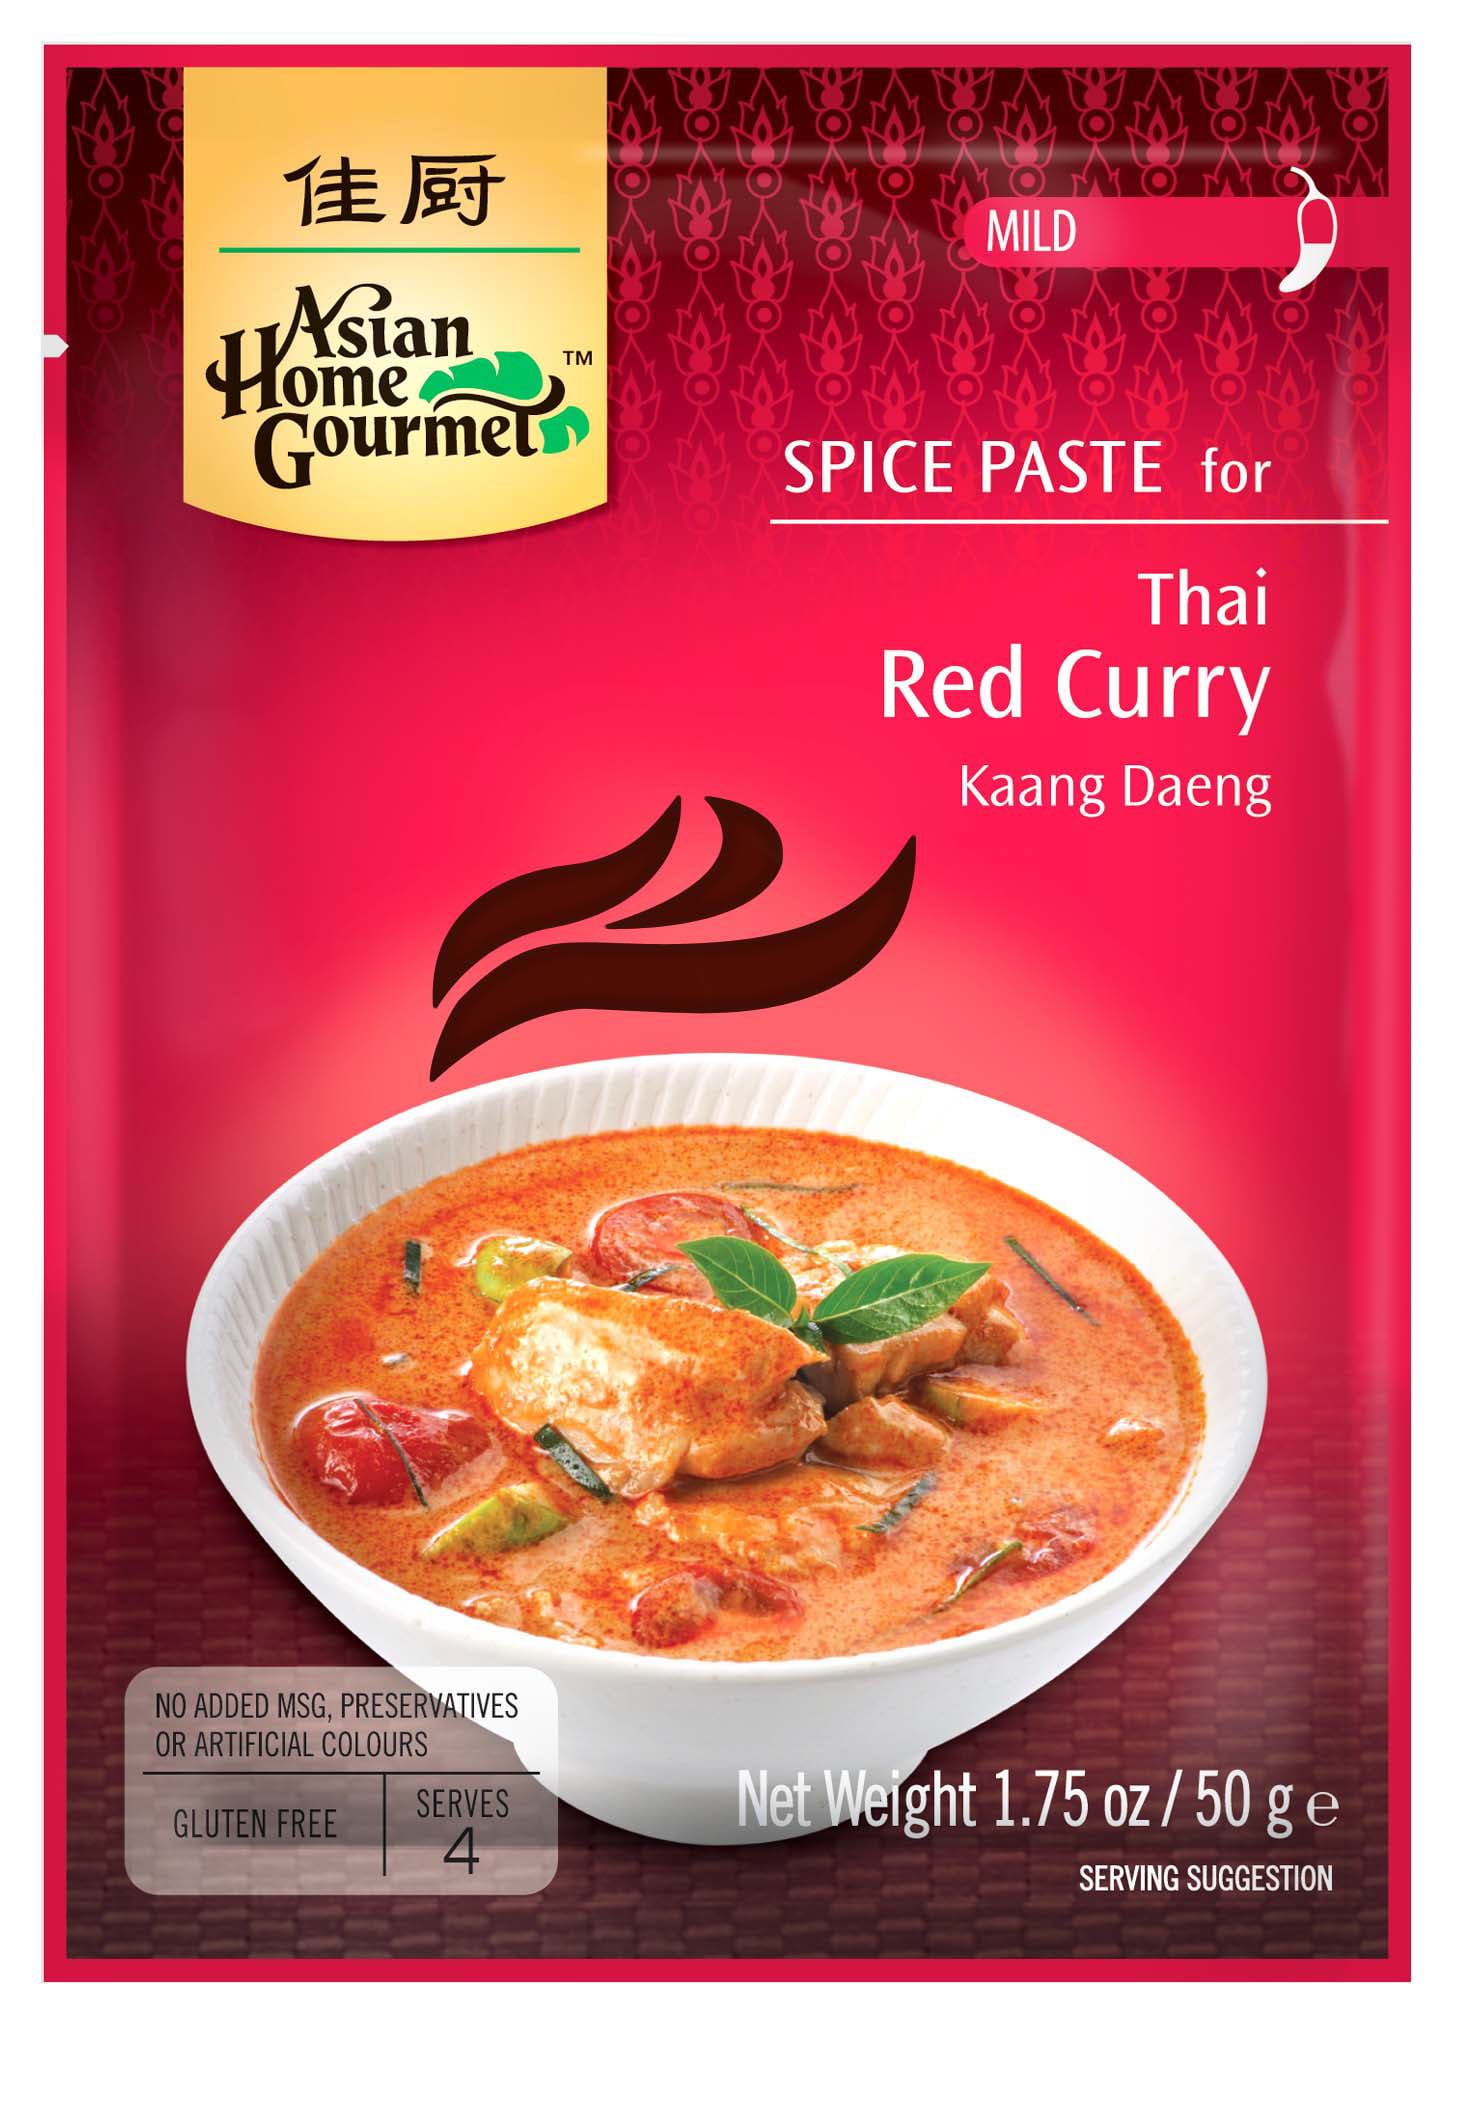 Asian Home Gourmet Spice Paste For Thai Red Curry 1 75 Oz Pack Of 12 Walmart Com Walmart Com